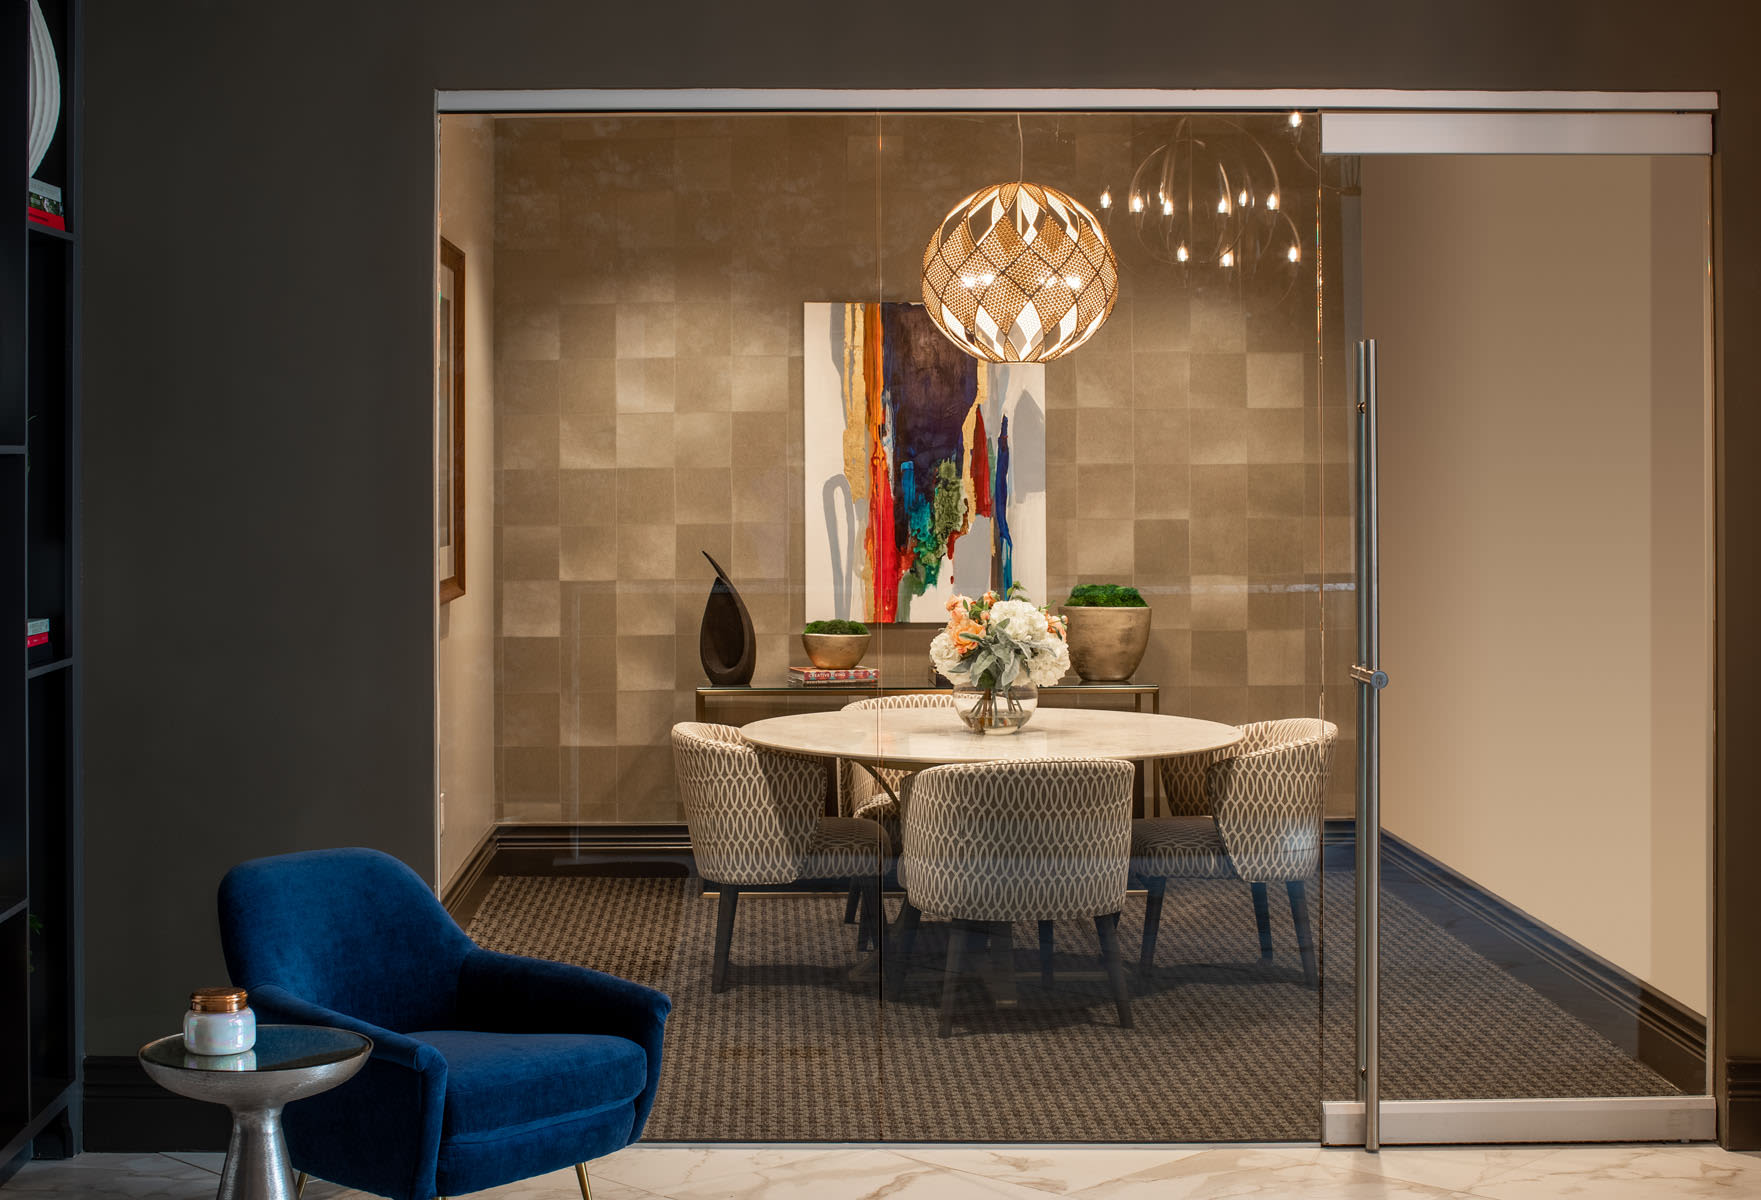 Private meeting area with relazing lighting at Magnolia Heights in San Antonio, Texas